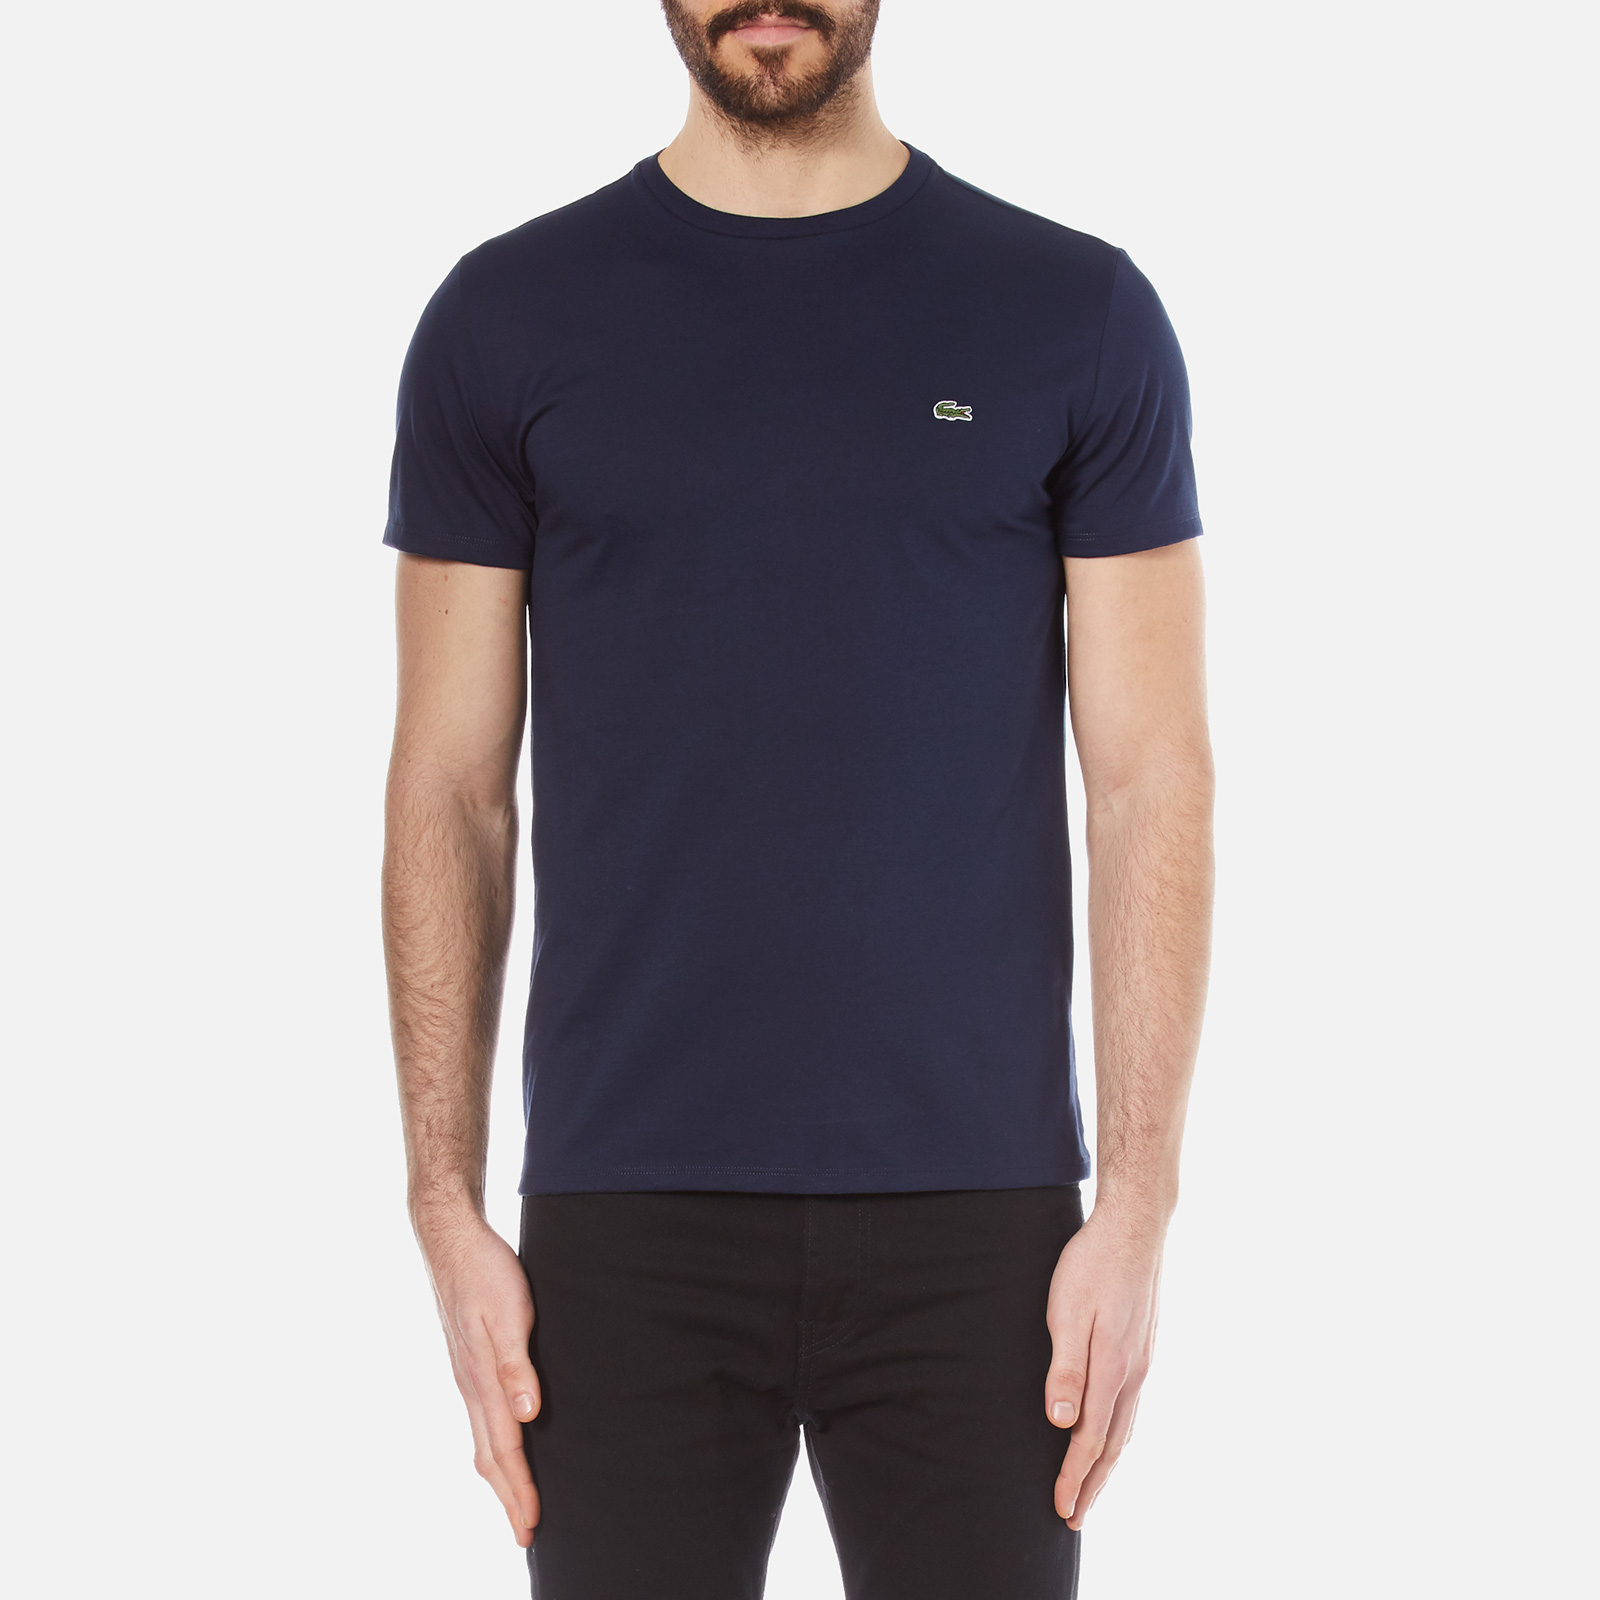 eb7f890037874 Lacoste Men s Classic Pima T-Shirt - Navy - Free UK Delivery over £50